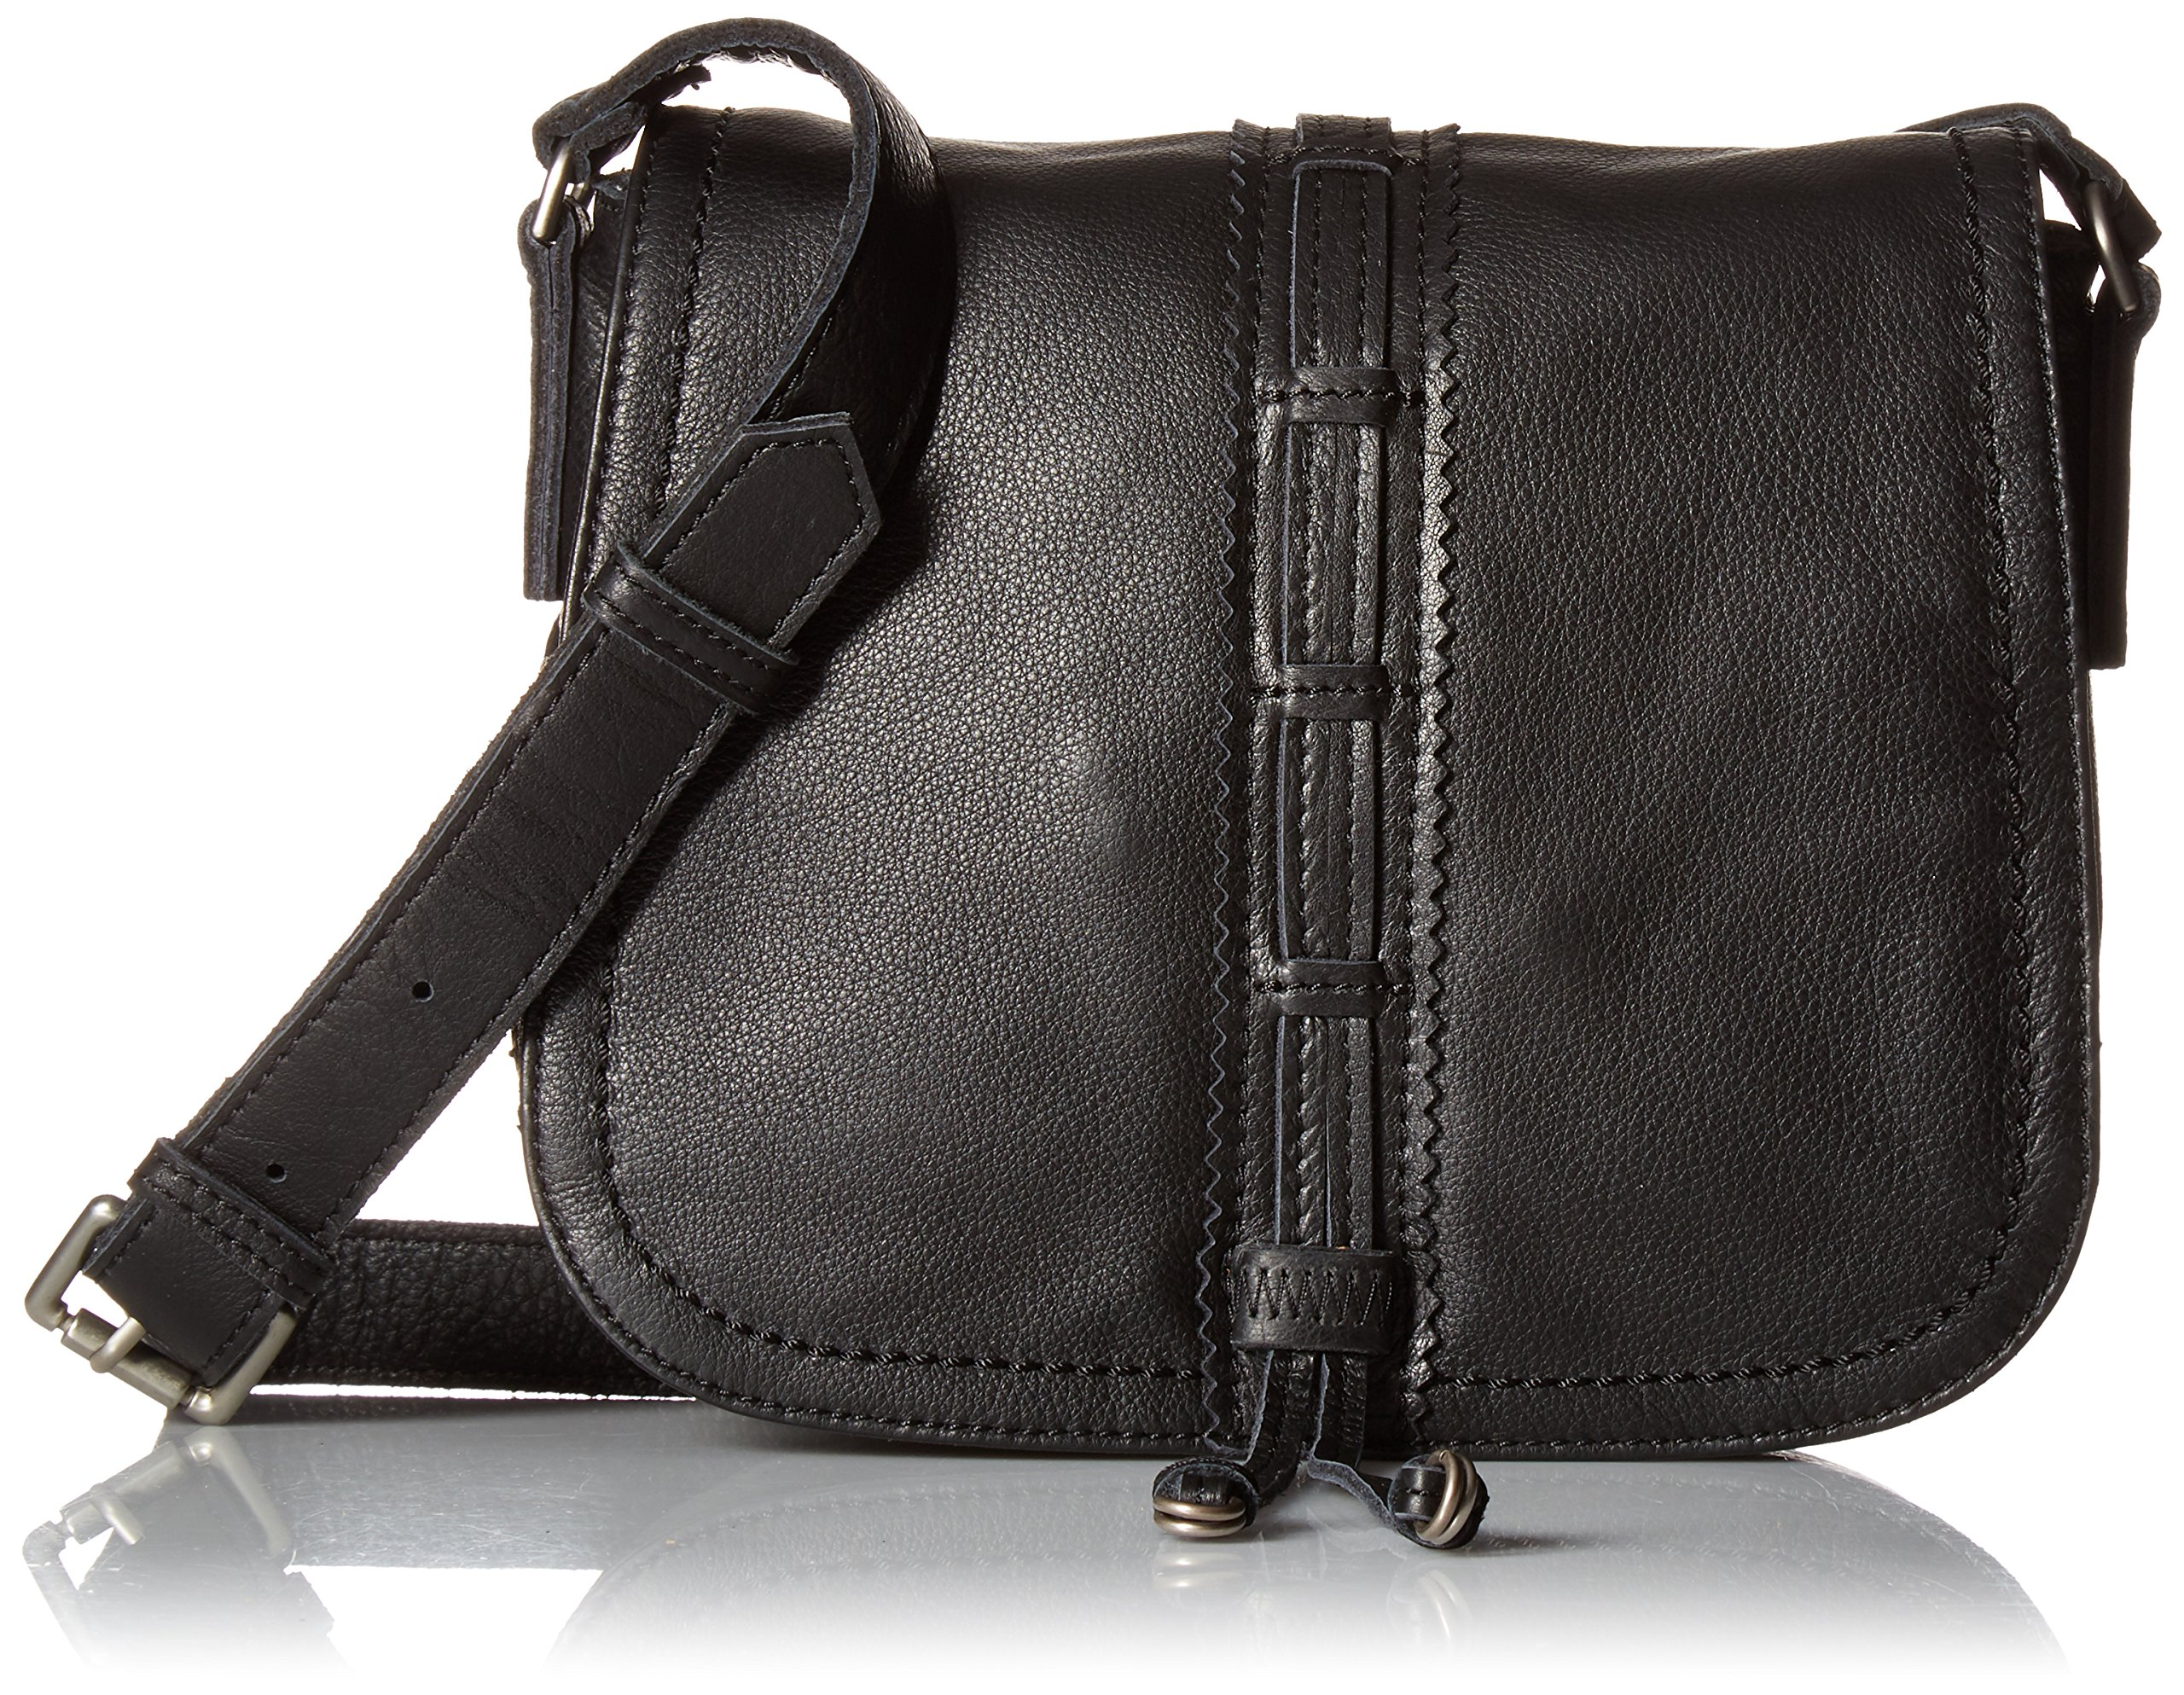 Liebeskind Berlin Women's Huntsville Leather Saddle Bag, Oil Black